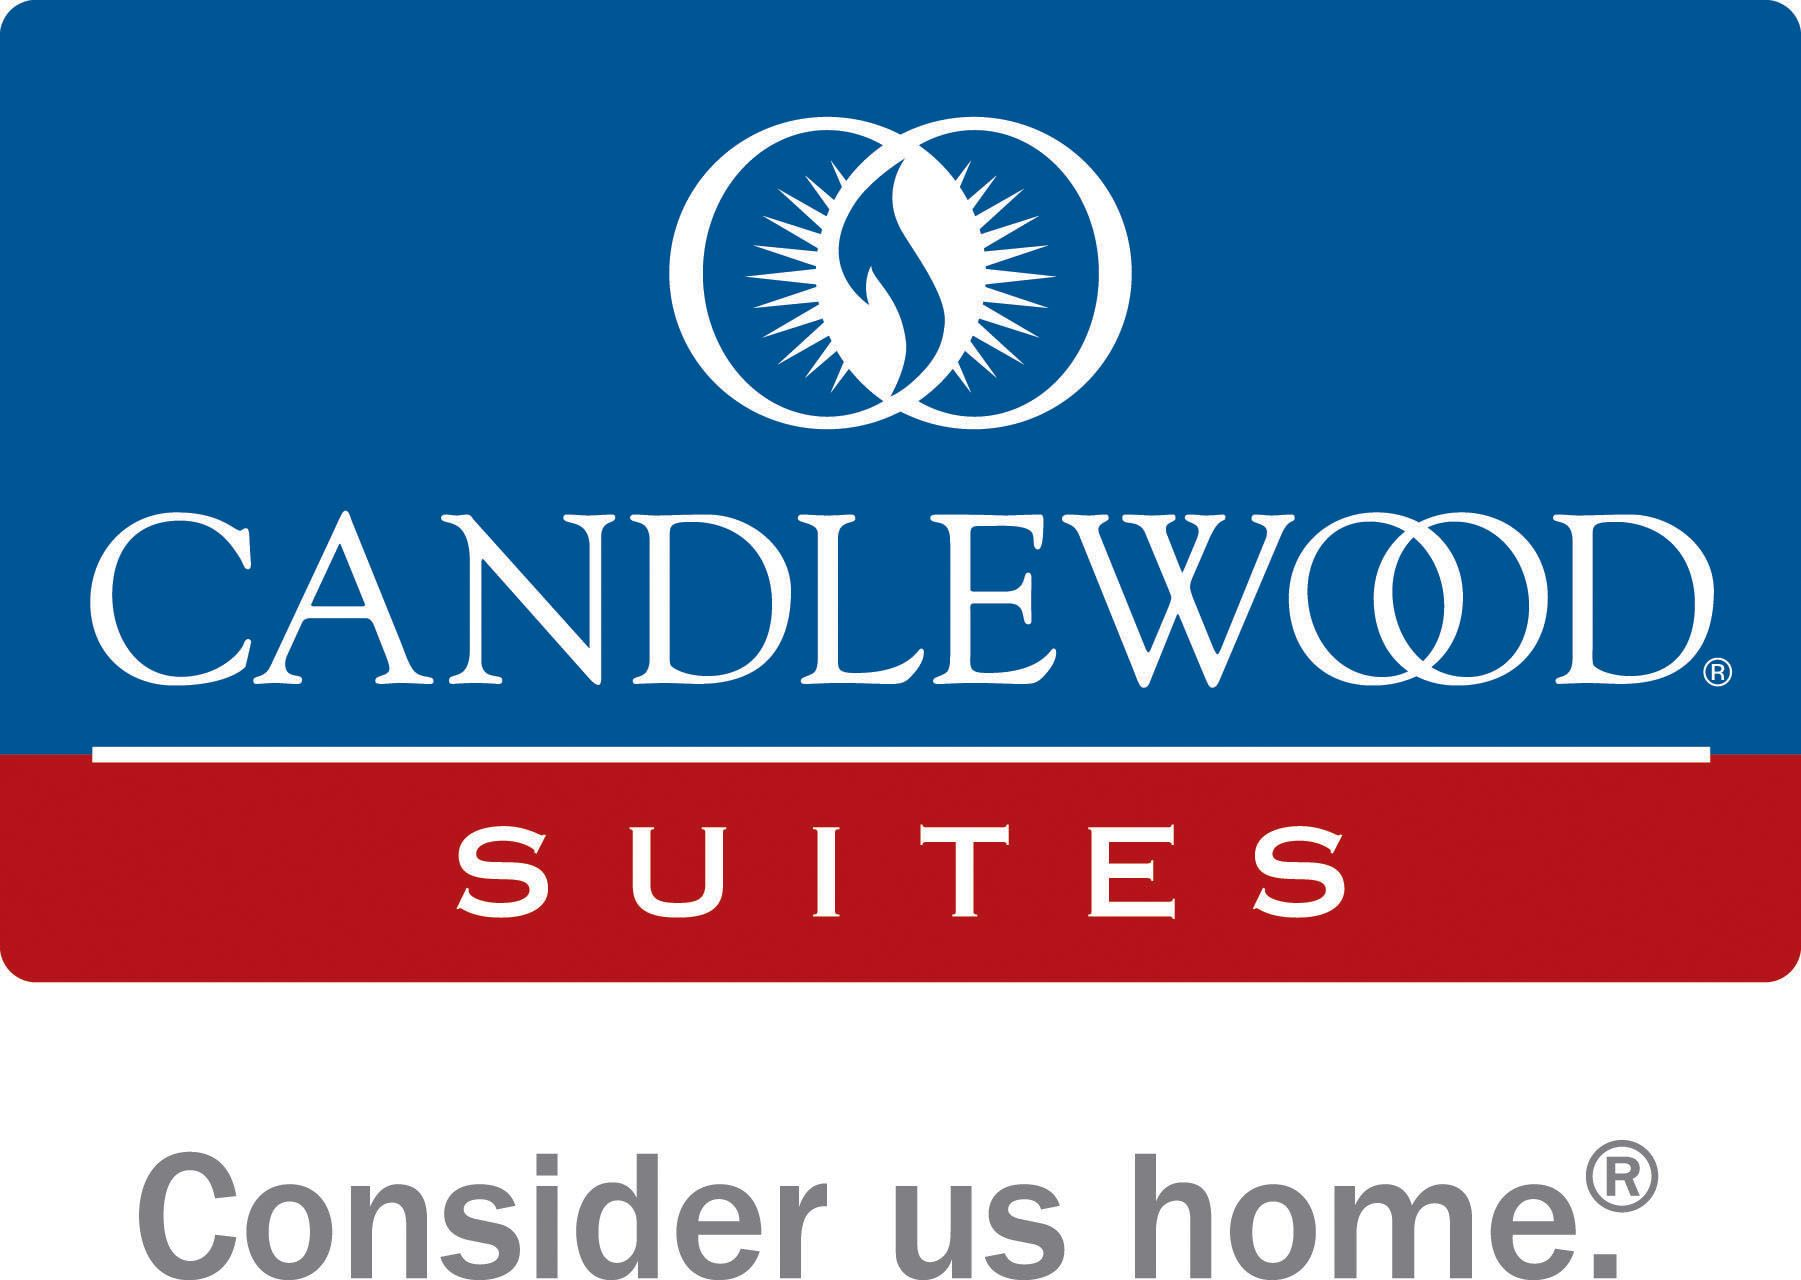 Candlewood Suites And The Logo Are Registered Trademarks Of Six Continents Hotels